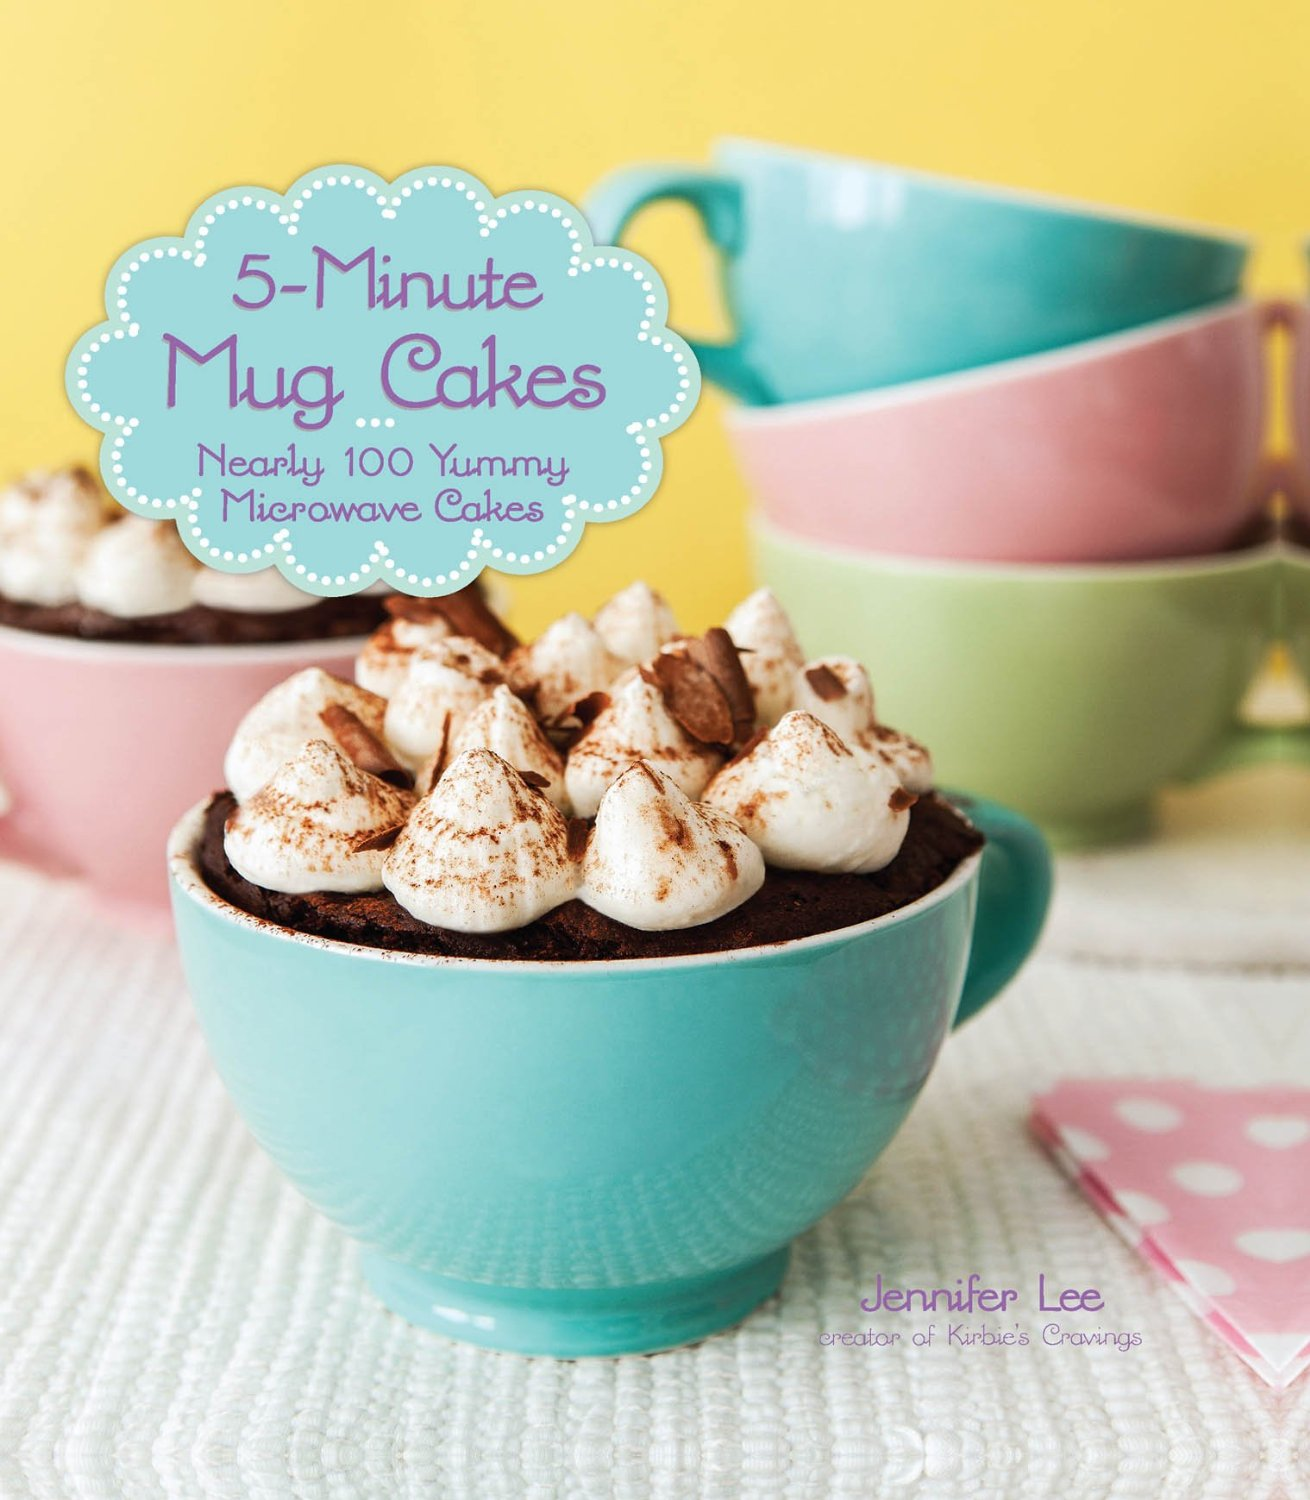 5-Minute Mug Cakes: Nearly 100 Yummy Microwave Cakes free download